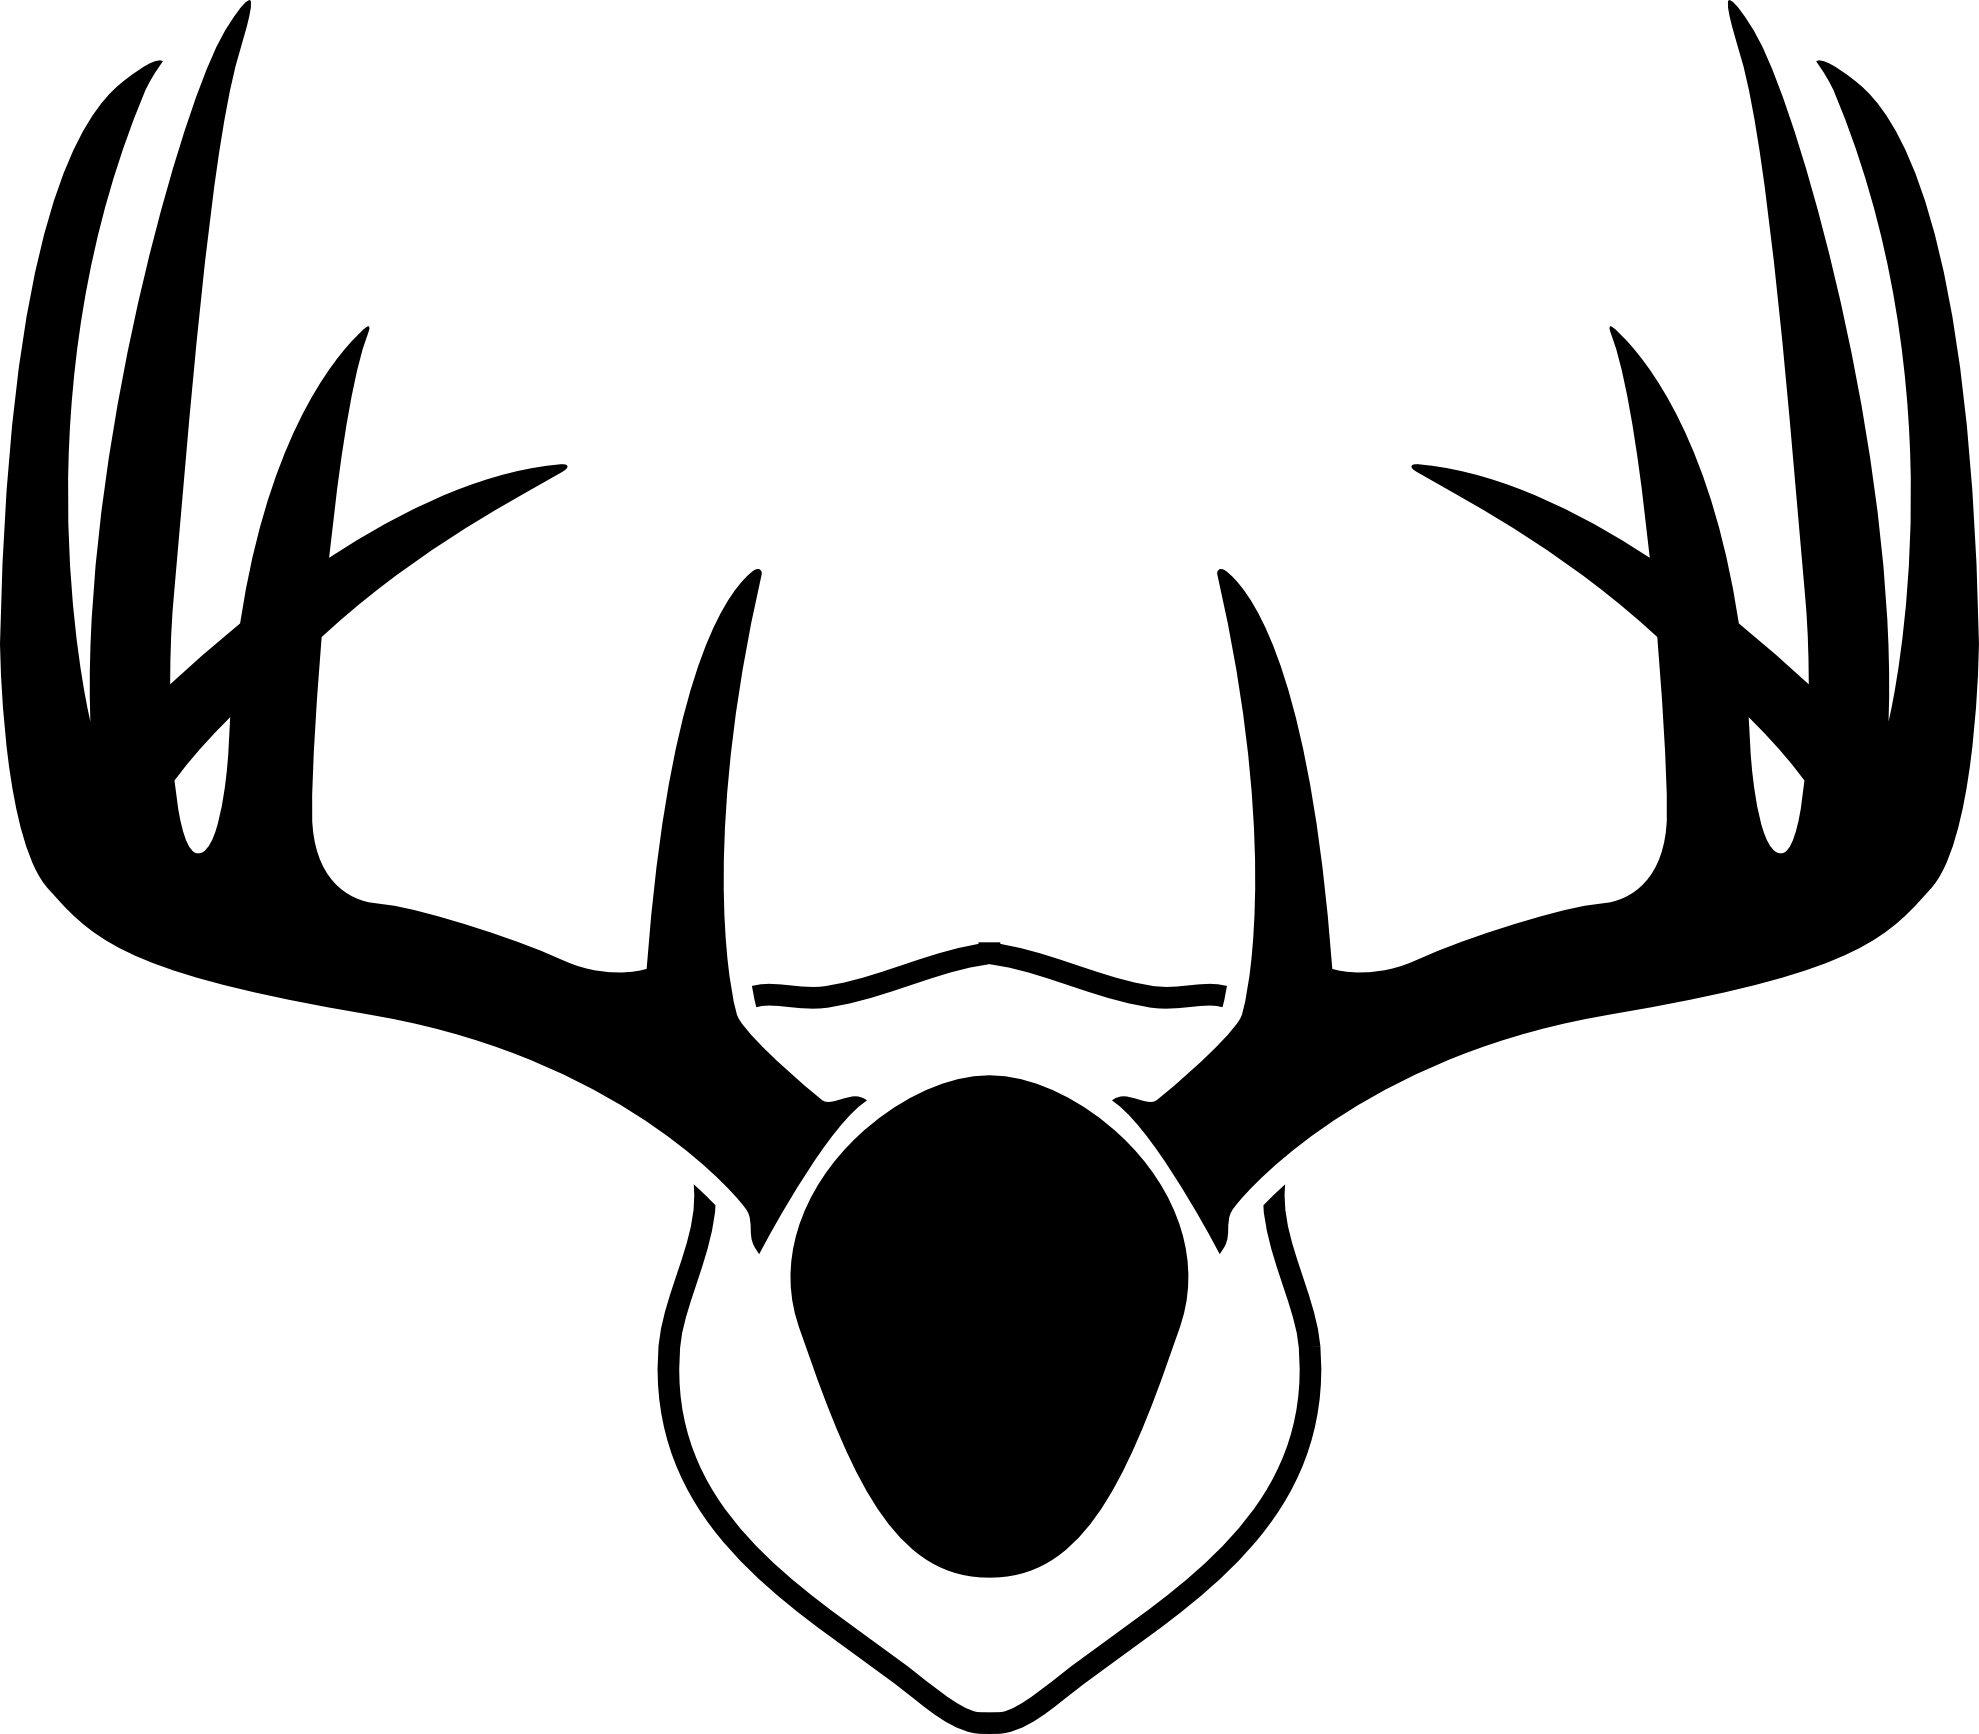 Collection Of Antler Clipart Free Download Best Antler Clipart On